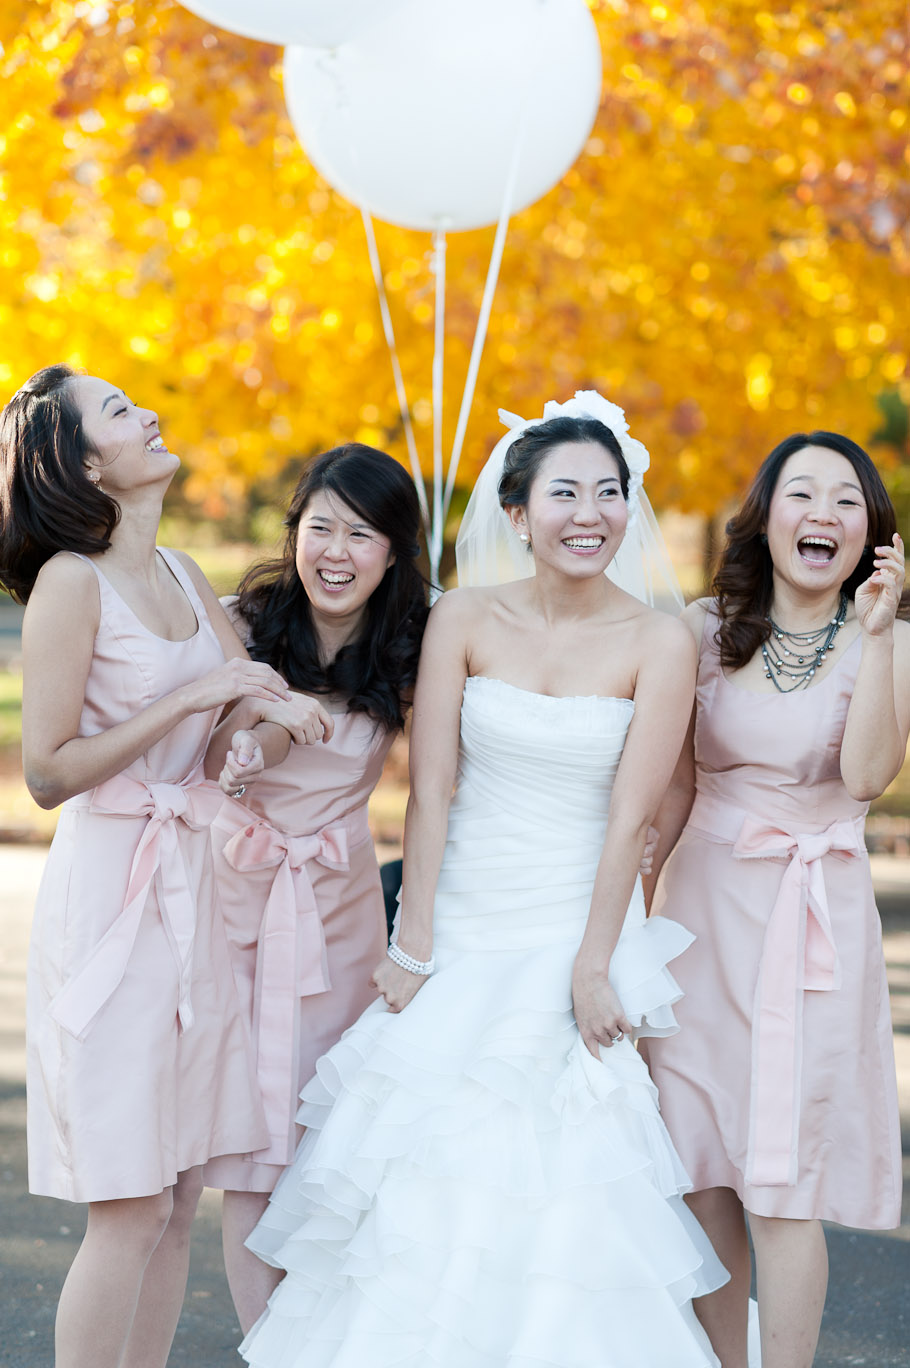 Bride and bridesmaids candidly enjoying themselves